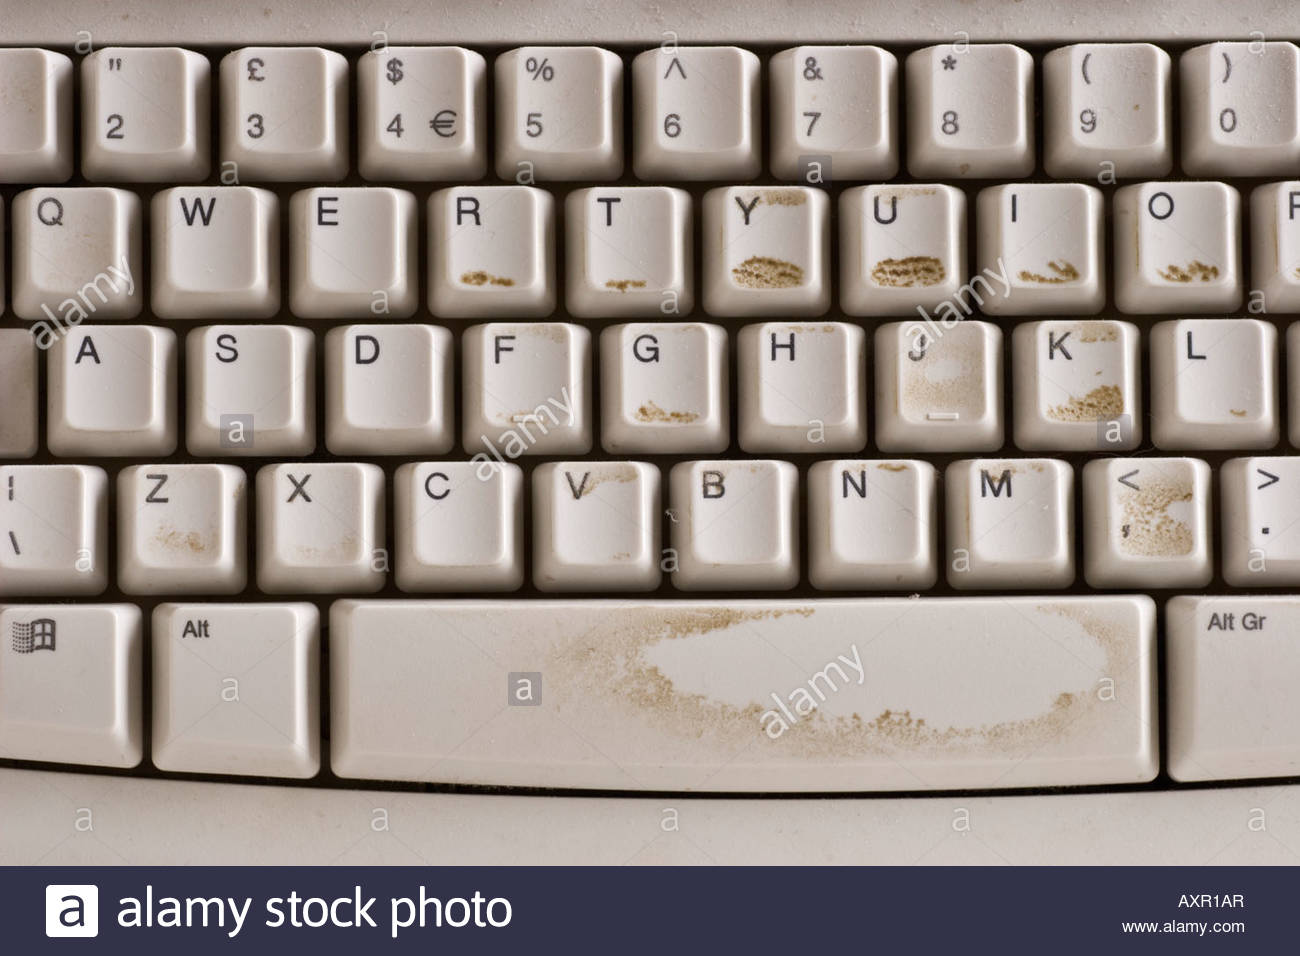 Dirty computer keyboard. - Stock Image